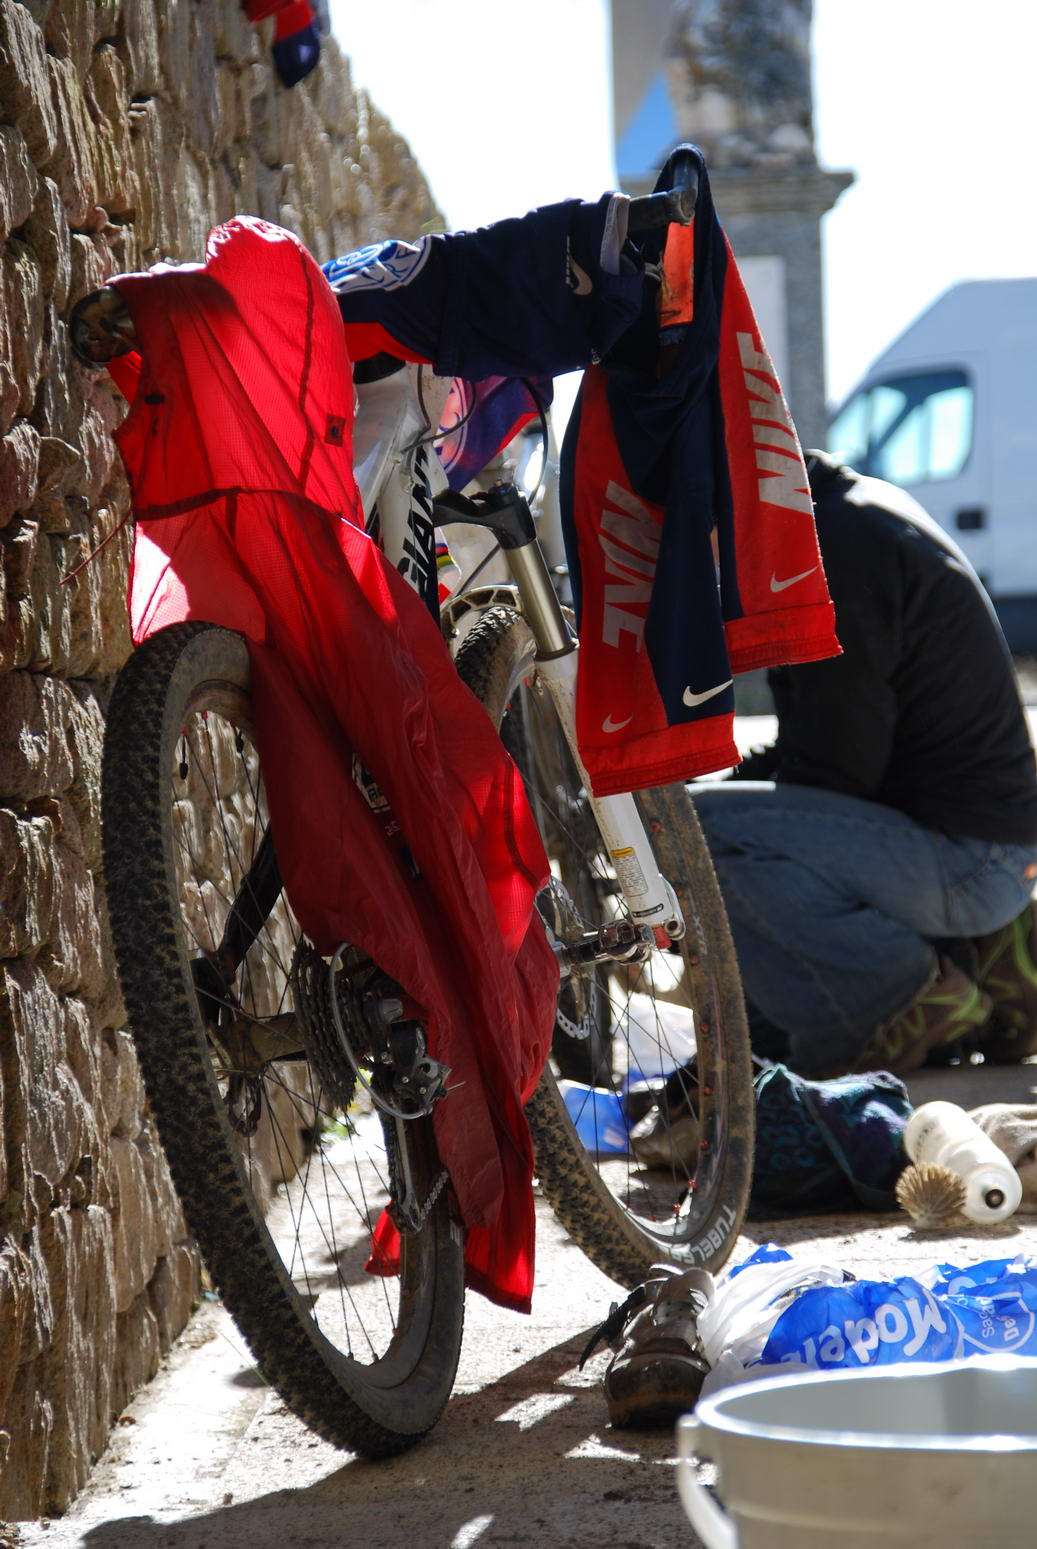 Cleaning bikes 2 (Portugal ARWC 2009)